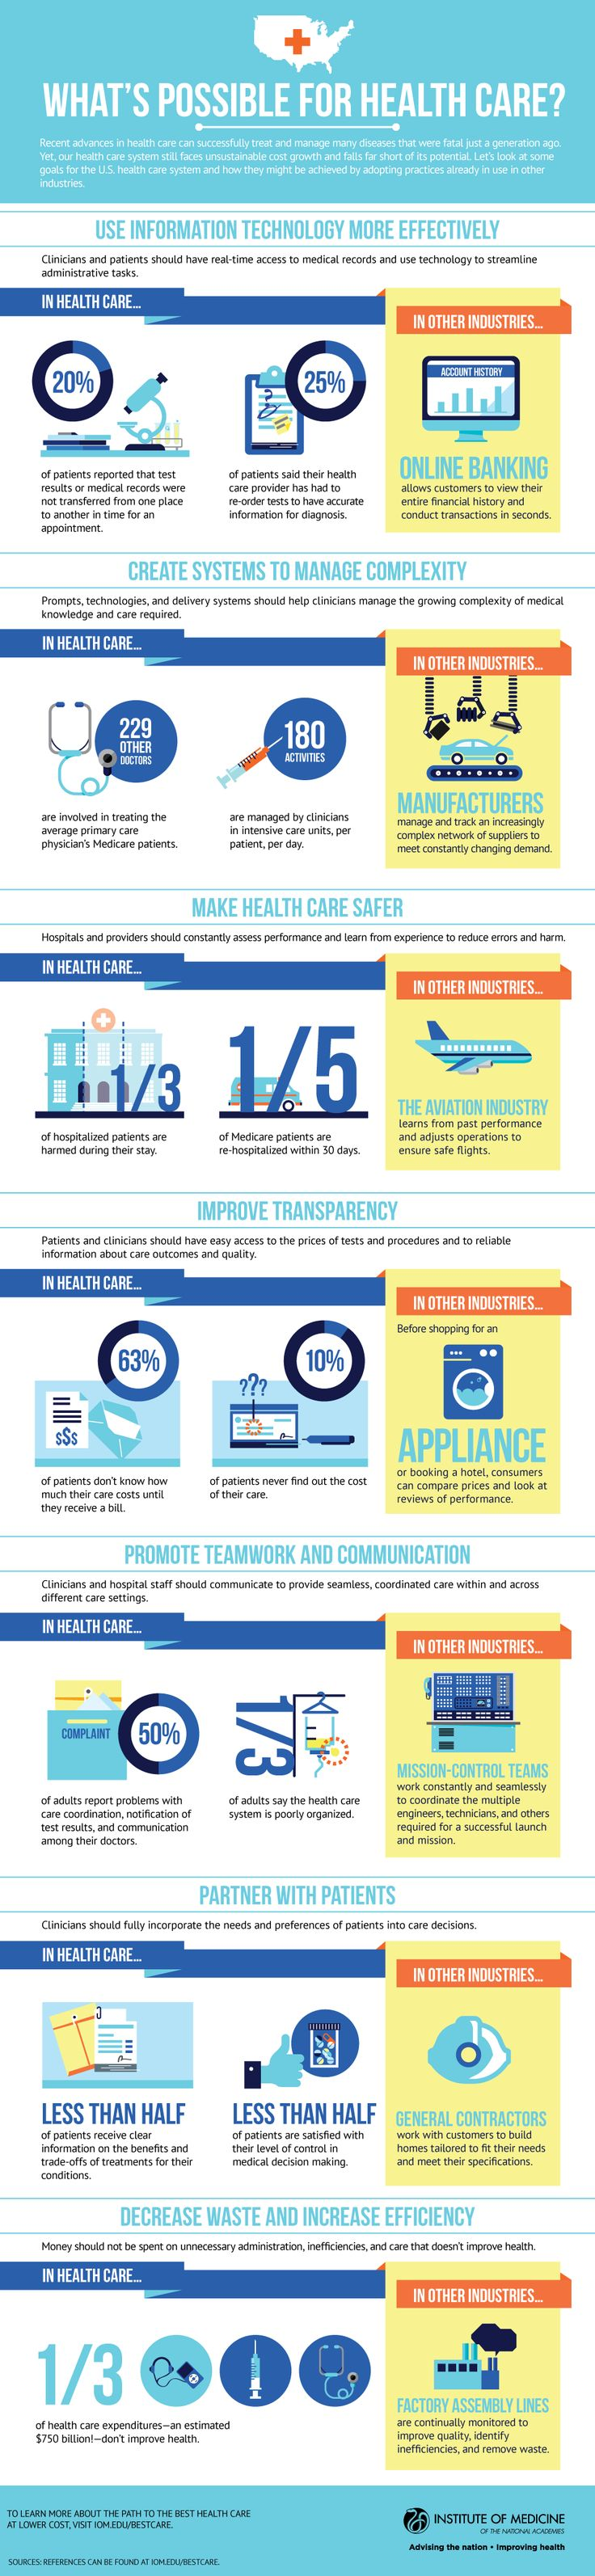 Institute of Medicine Infographic: The Possibilities for Health Care